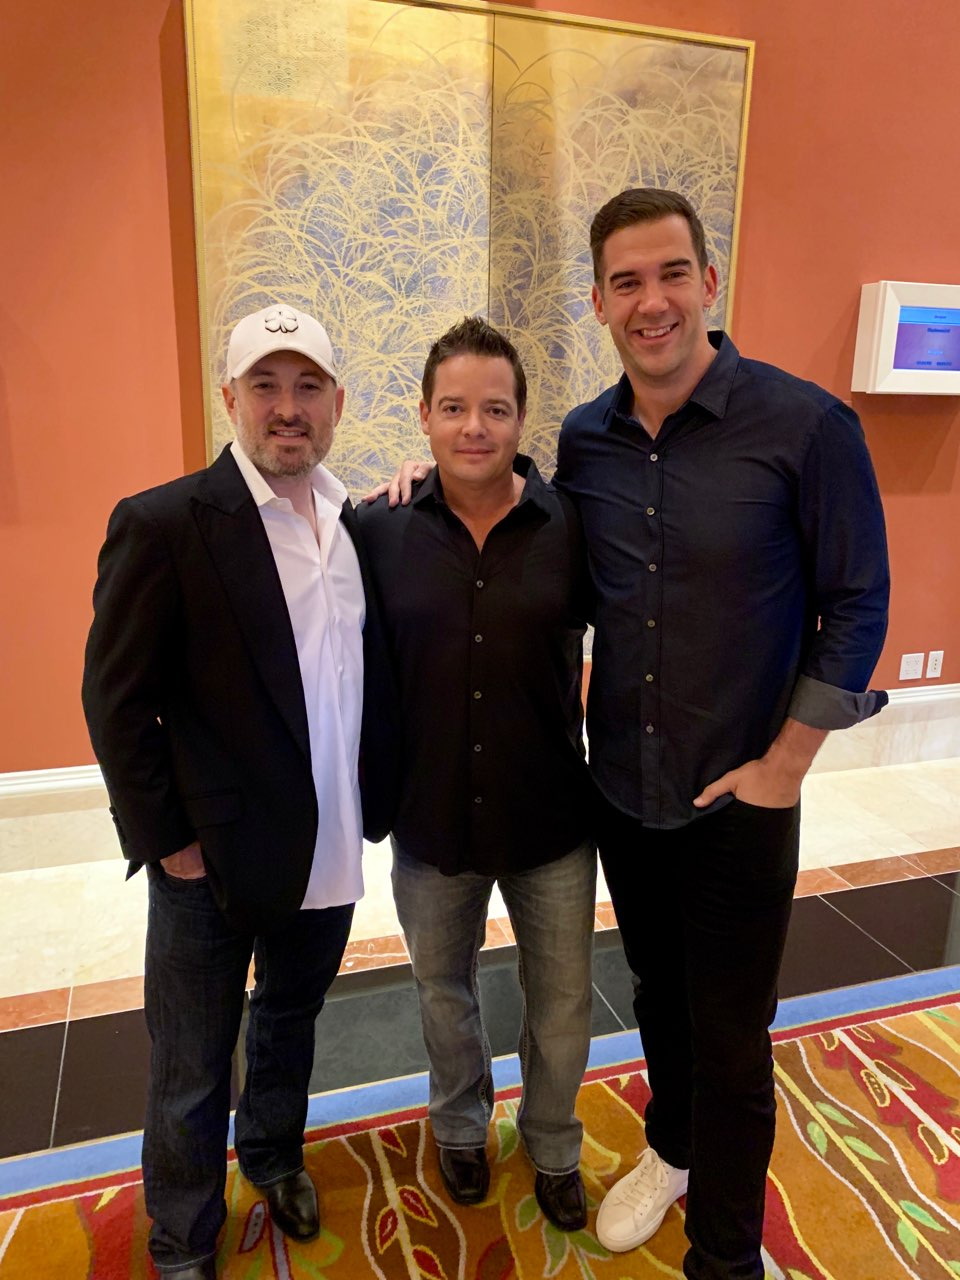 Josh Bezoni at a Las Vegas award ceremony with longtime friends Mike Dillard and Lewis Howes